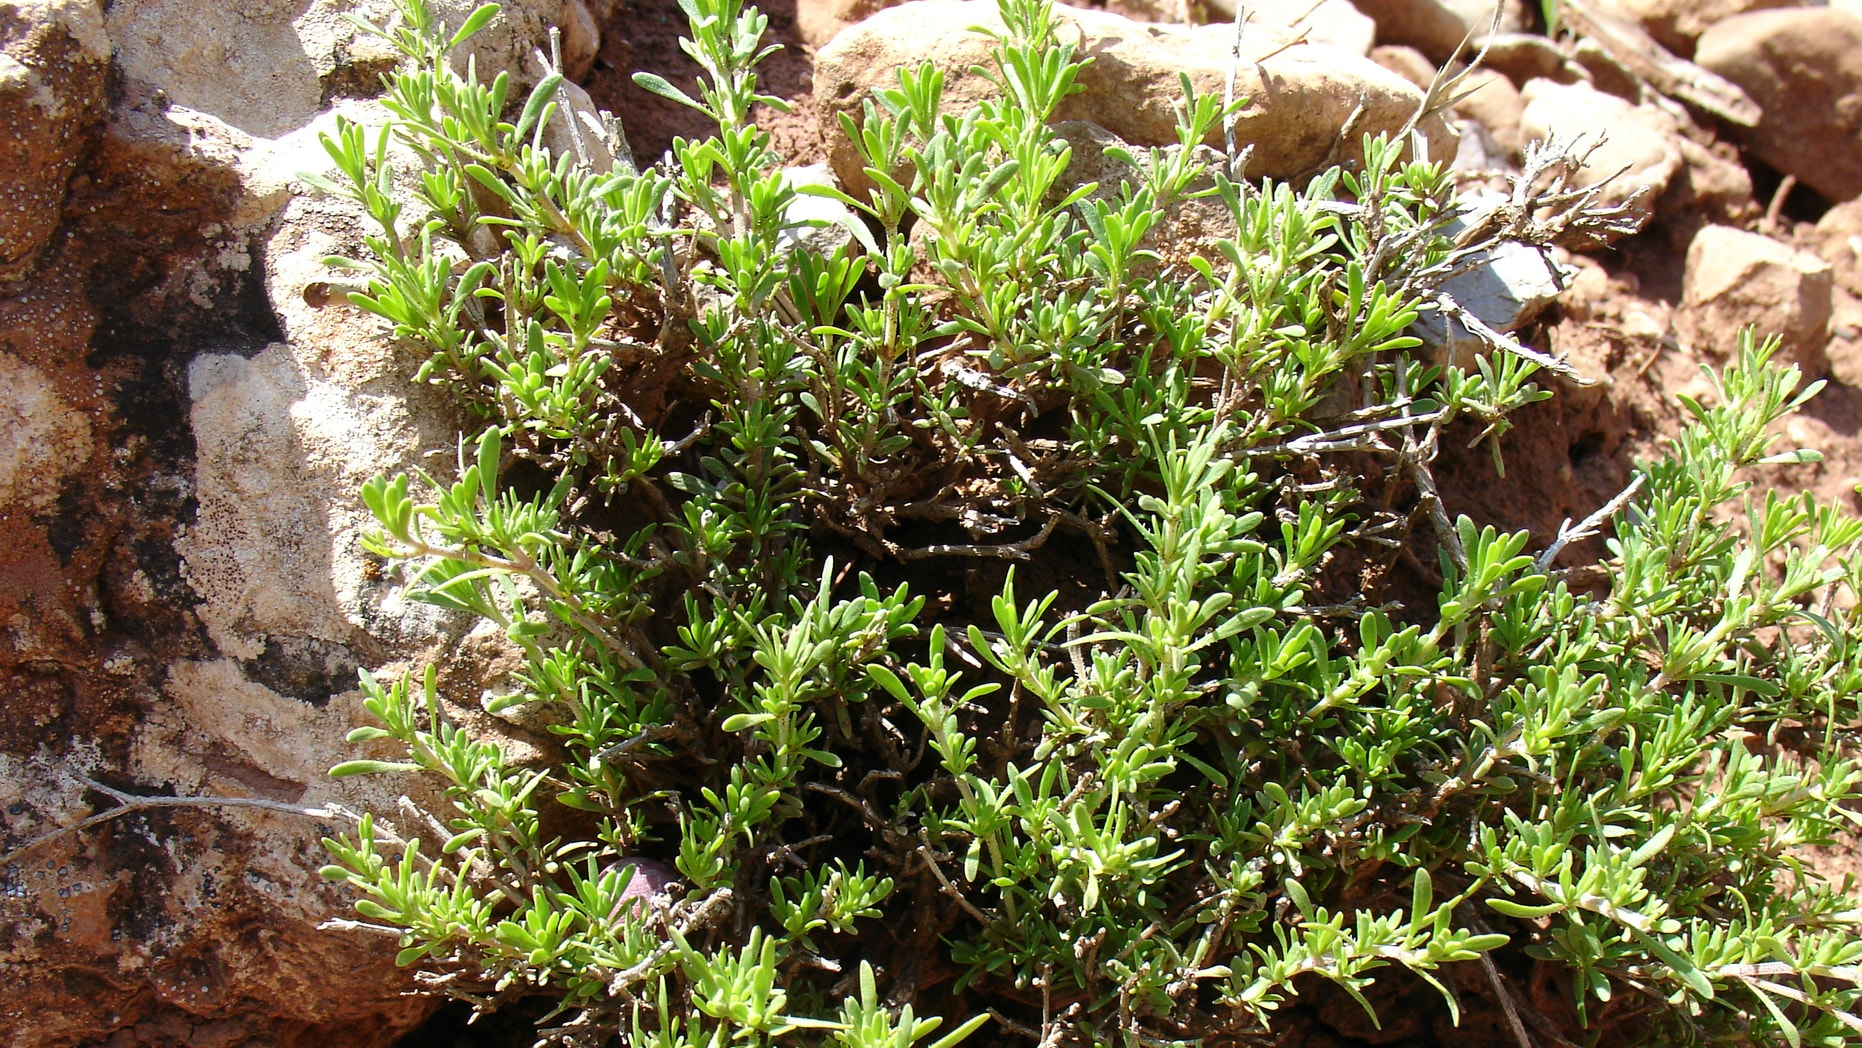 Bronchitis season means it's time for thyme | Fox News